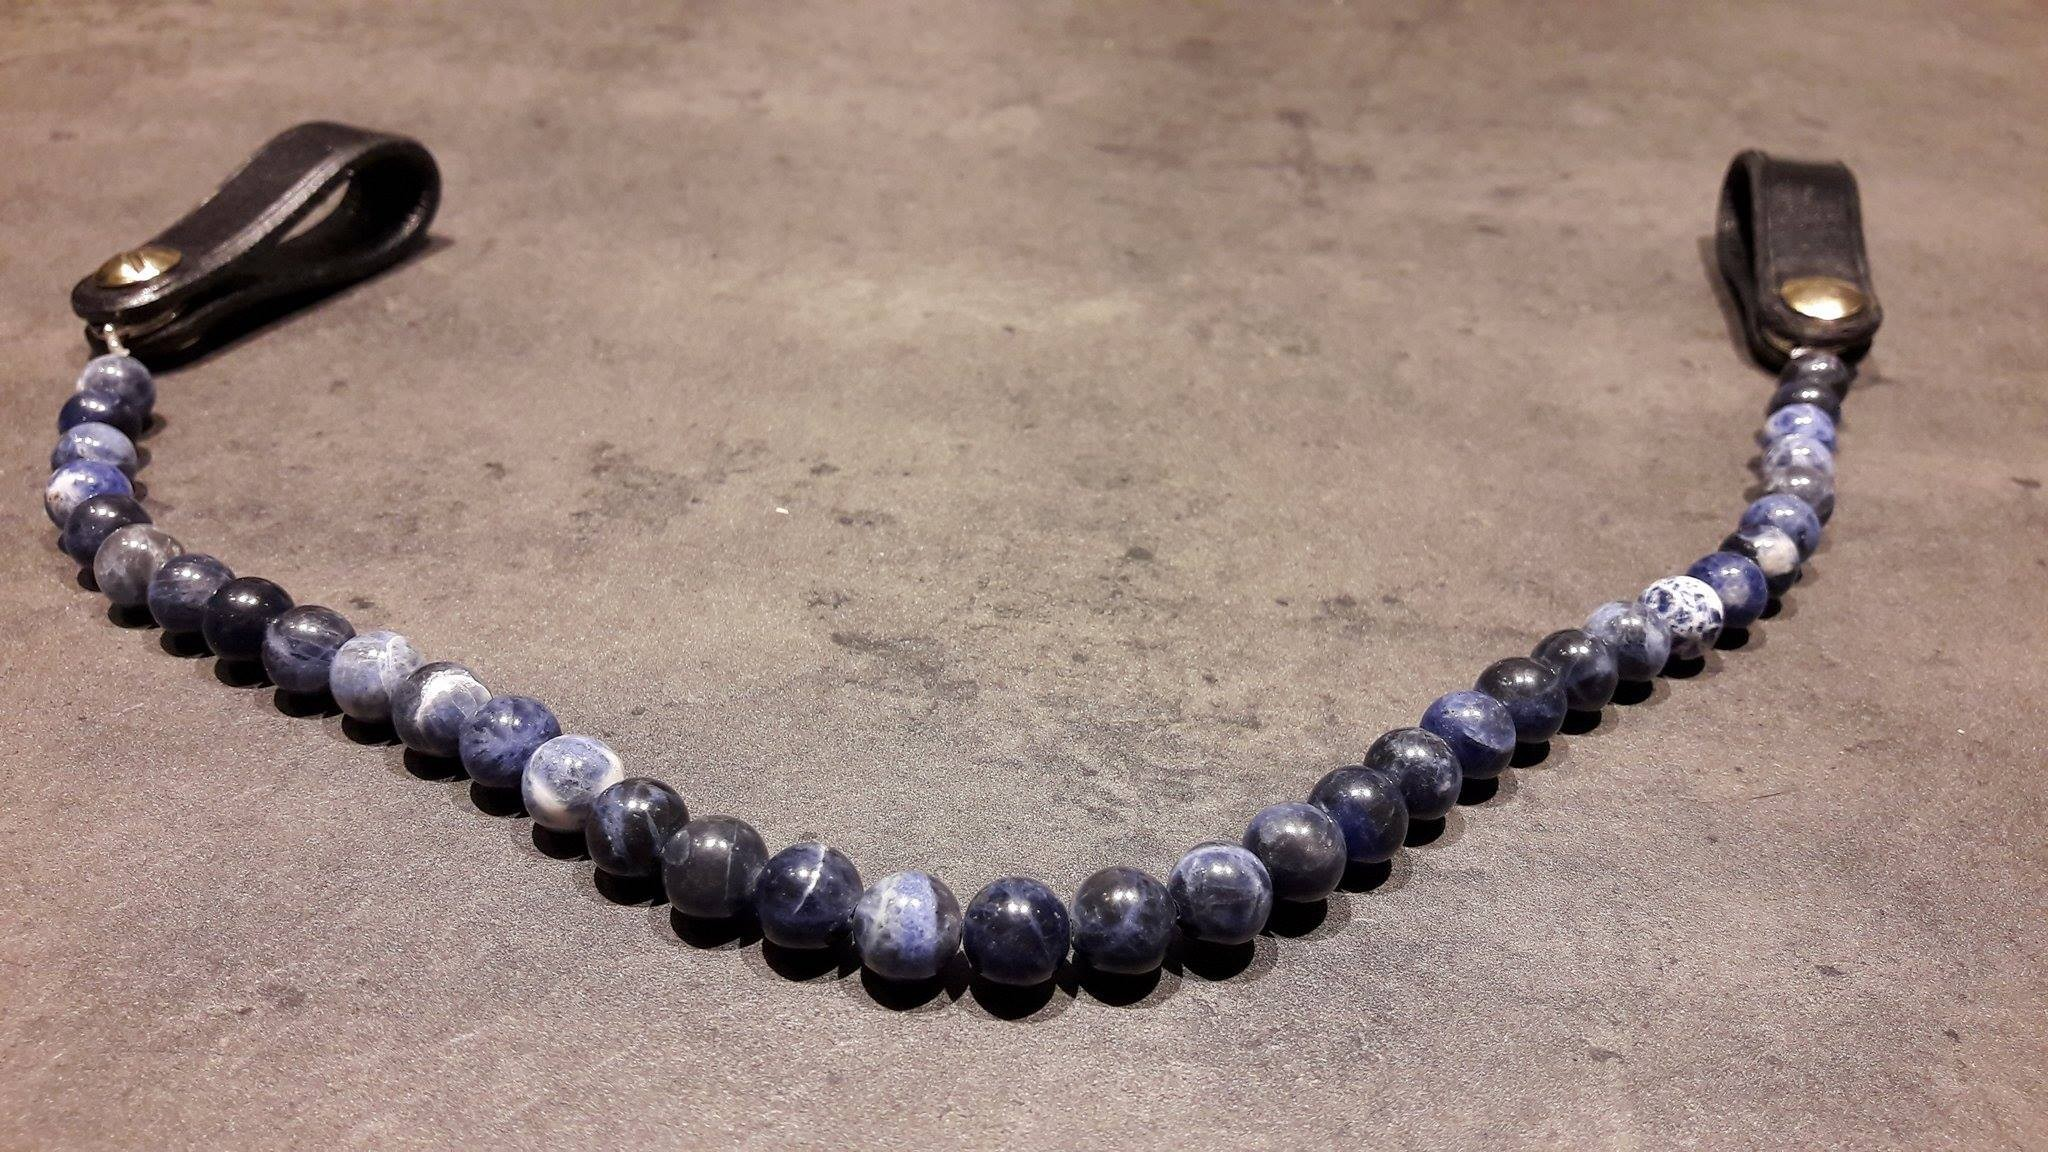 Frontal Sodalite - Concentration